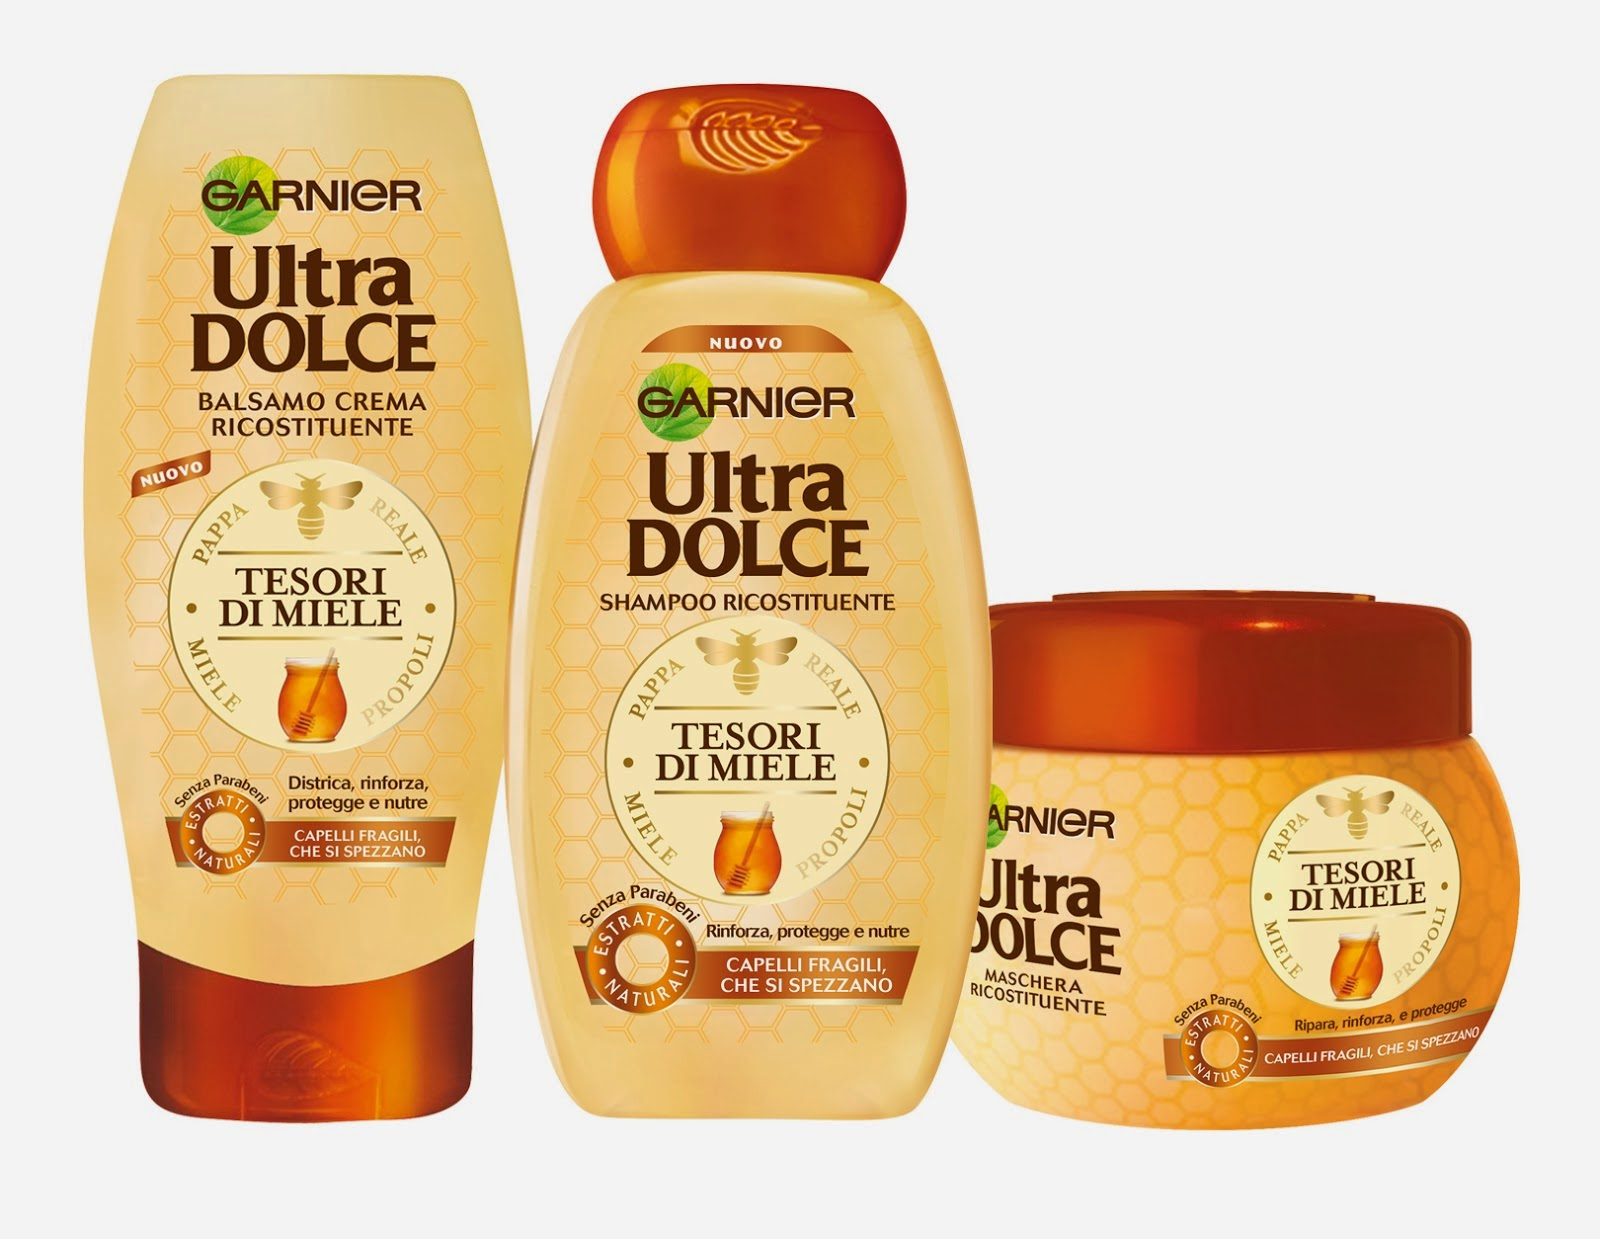 Ultradolce di Garnier